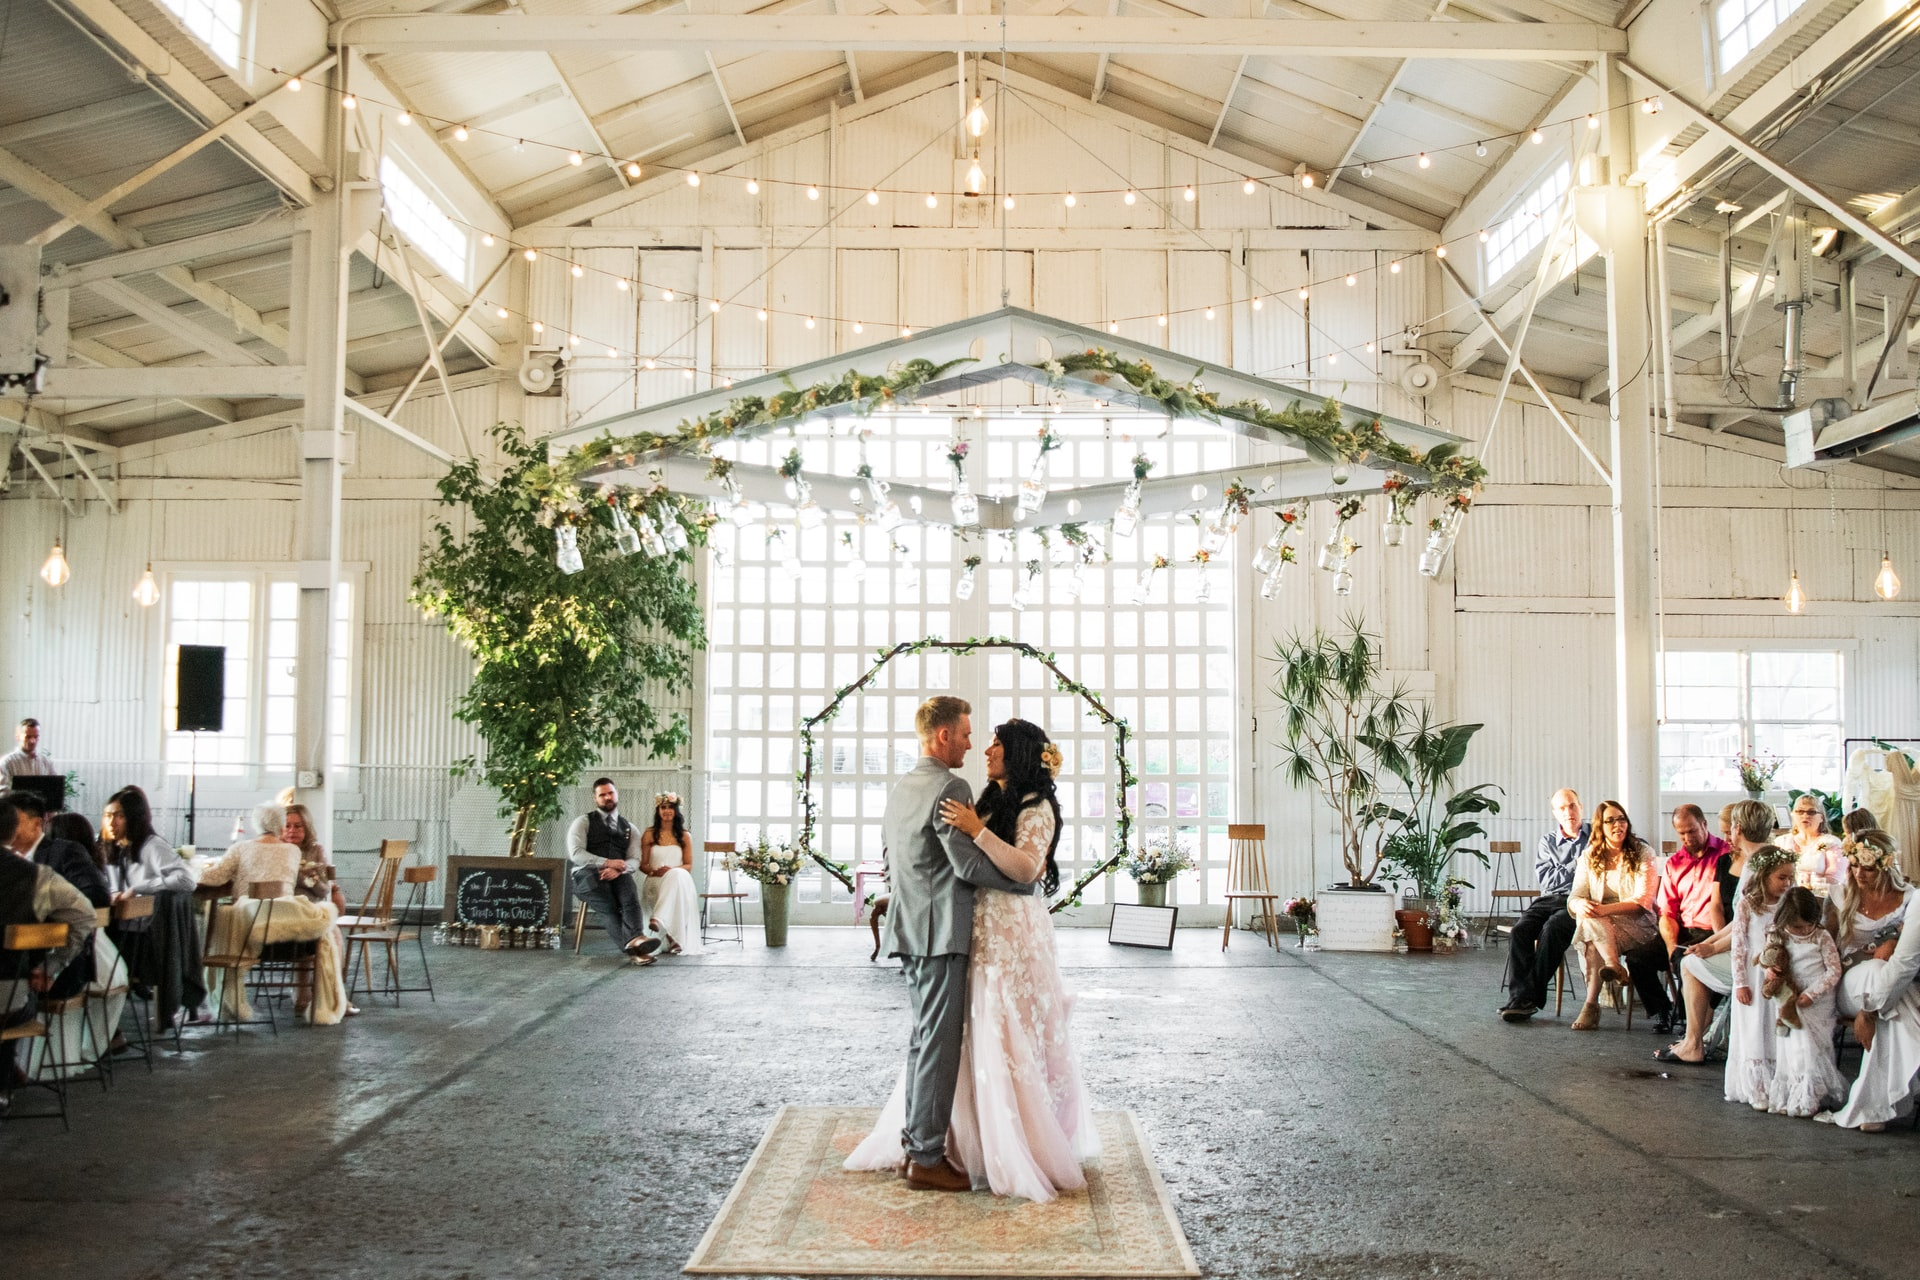 Complete Wedding Venues Guide & How to Choose the Perfect One